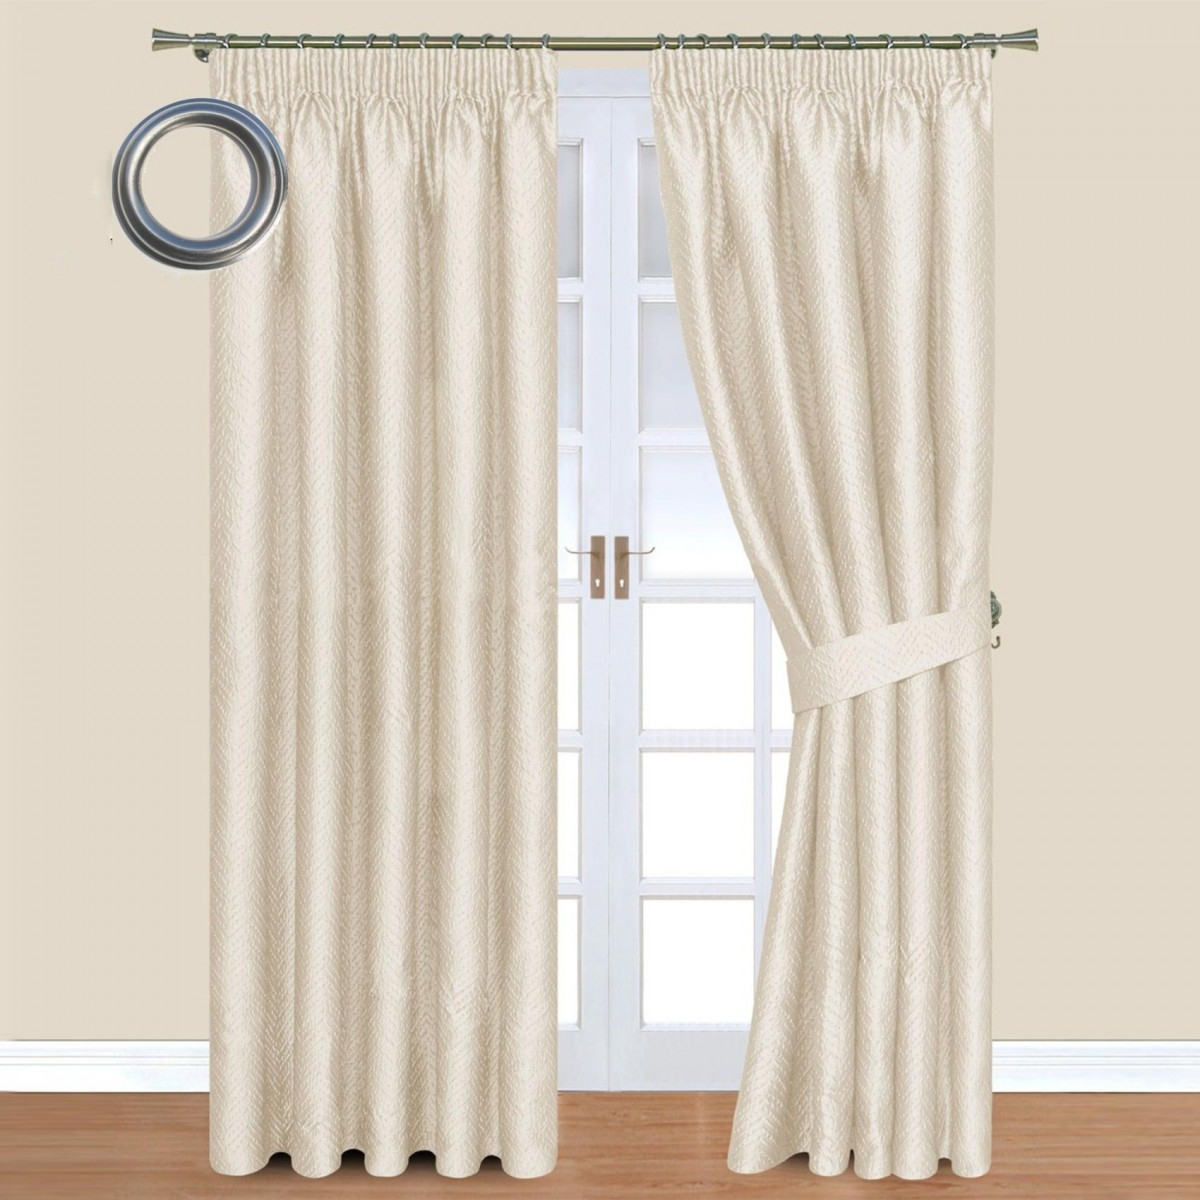 Cream Jacquard Eyelet Lined Curtains Inside Cream Lined Curtains (Image 3 of 15)